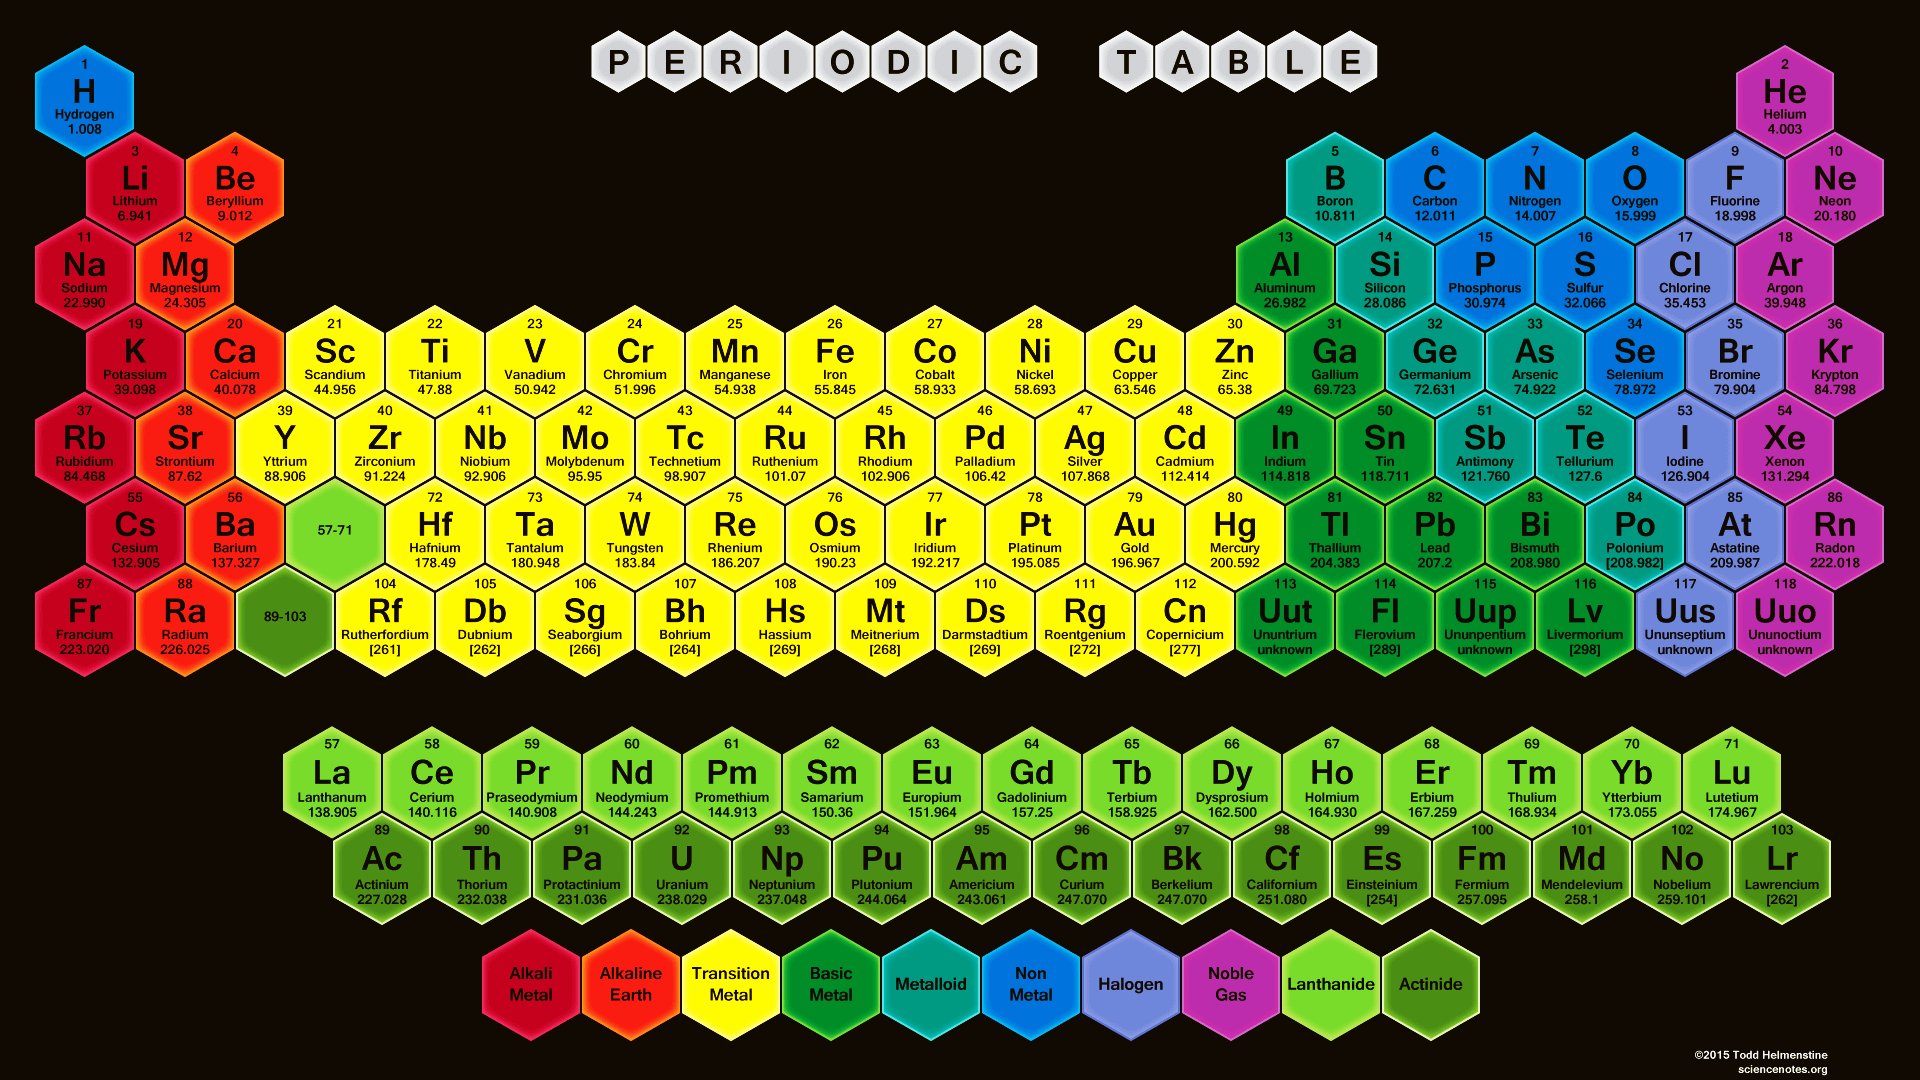 Color hexagon periodic table wallpaper part of a growing color hexagon periodic table wallpaper part of a growing collection of hexagon and honeycomb periodic tables of the elements urtaz Image collections